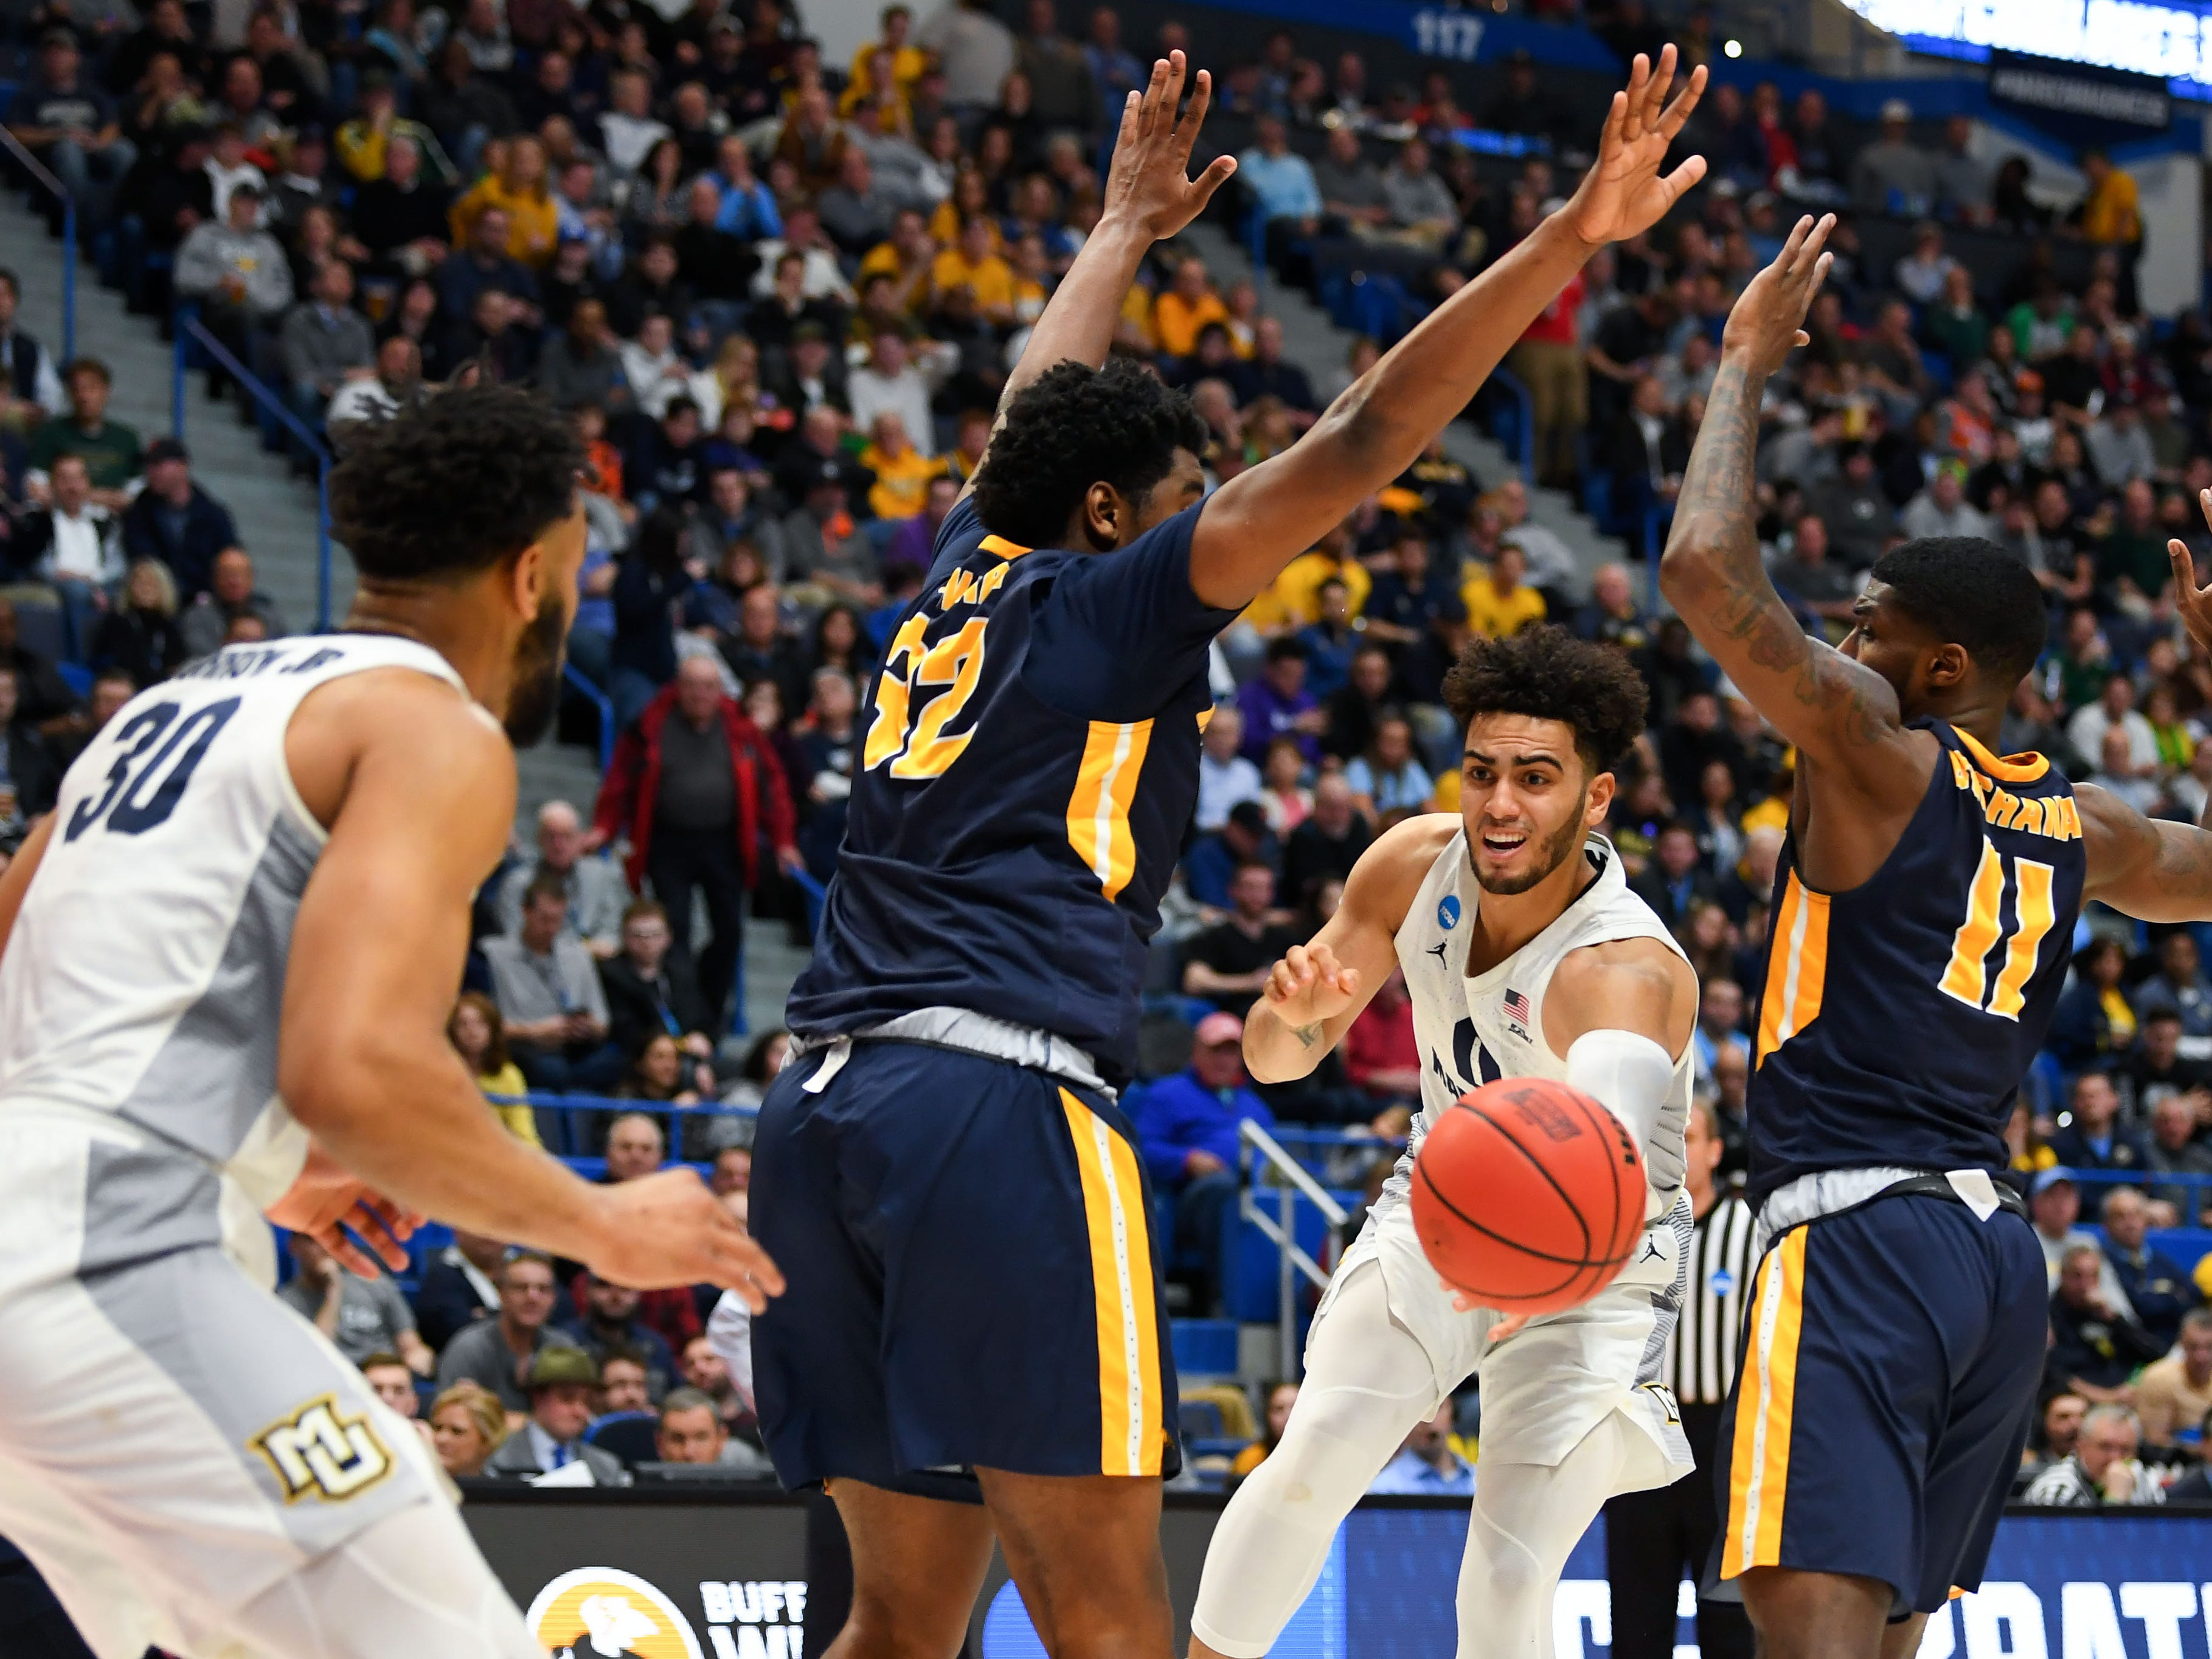 Golden Eagles guard Markus Howard passes the ball to forward Ed Morrow between a pair of Murray State defenders during the first half.